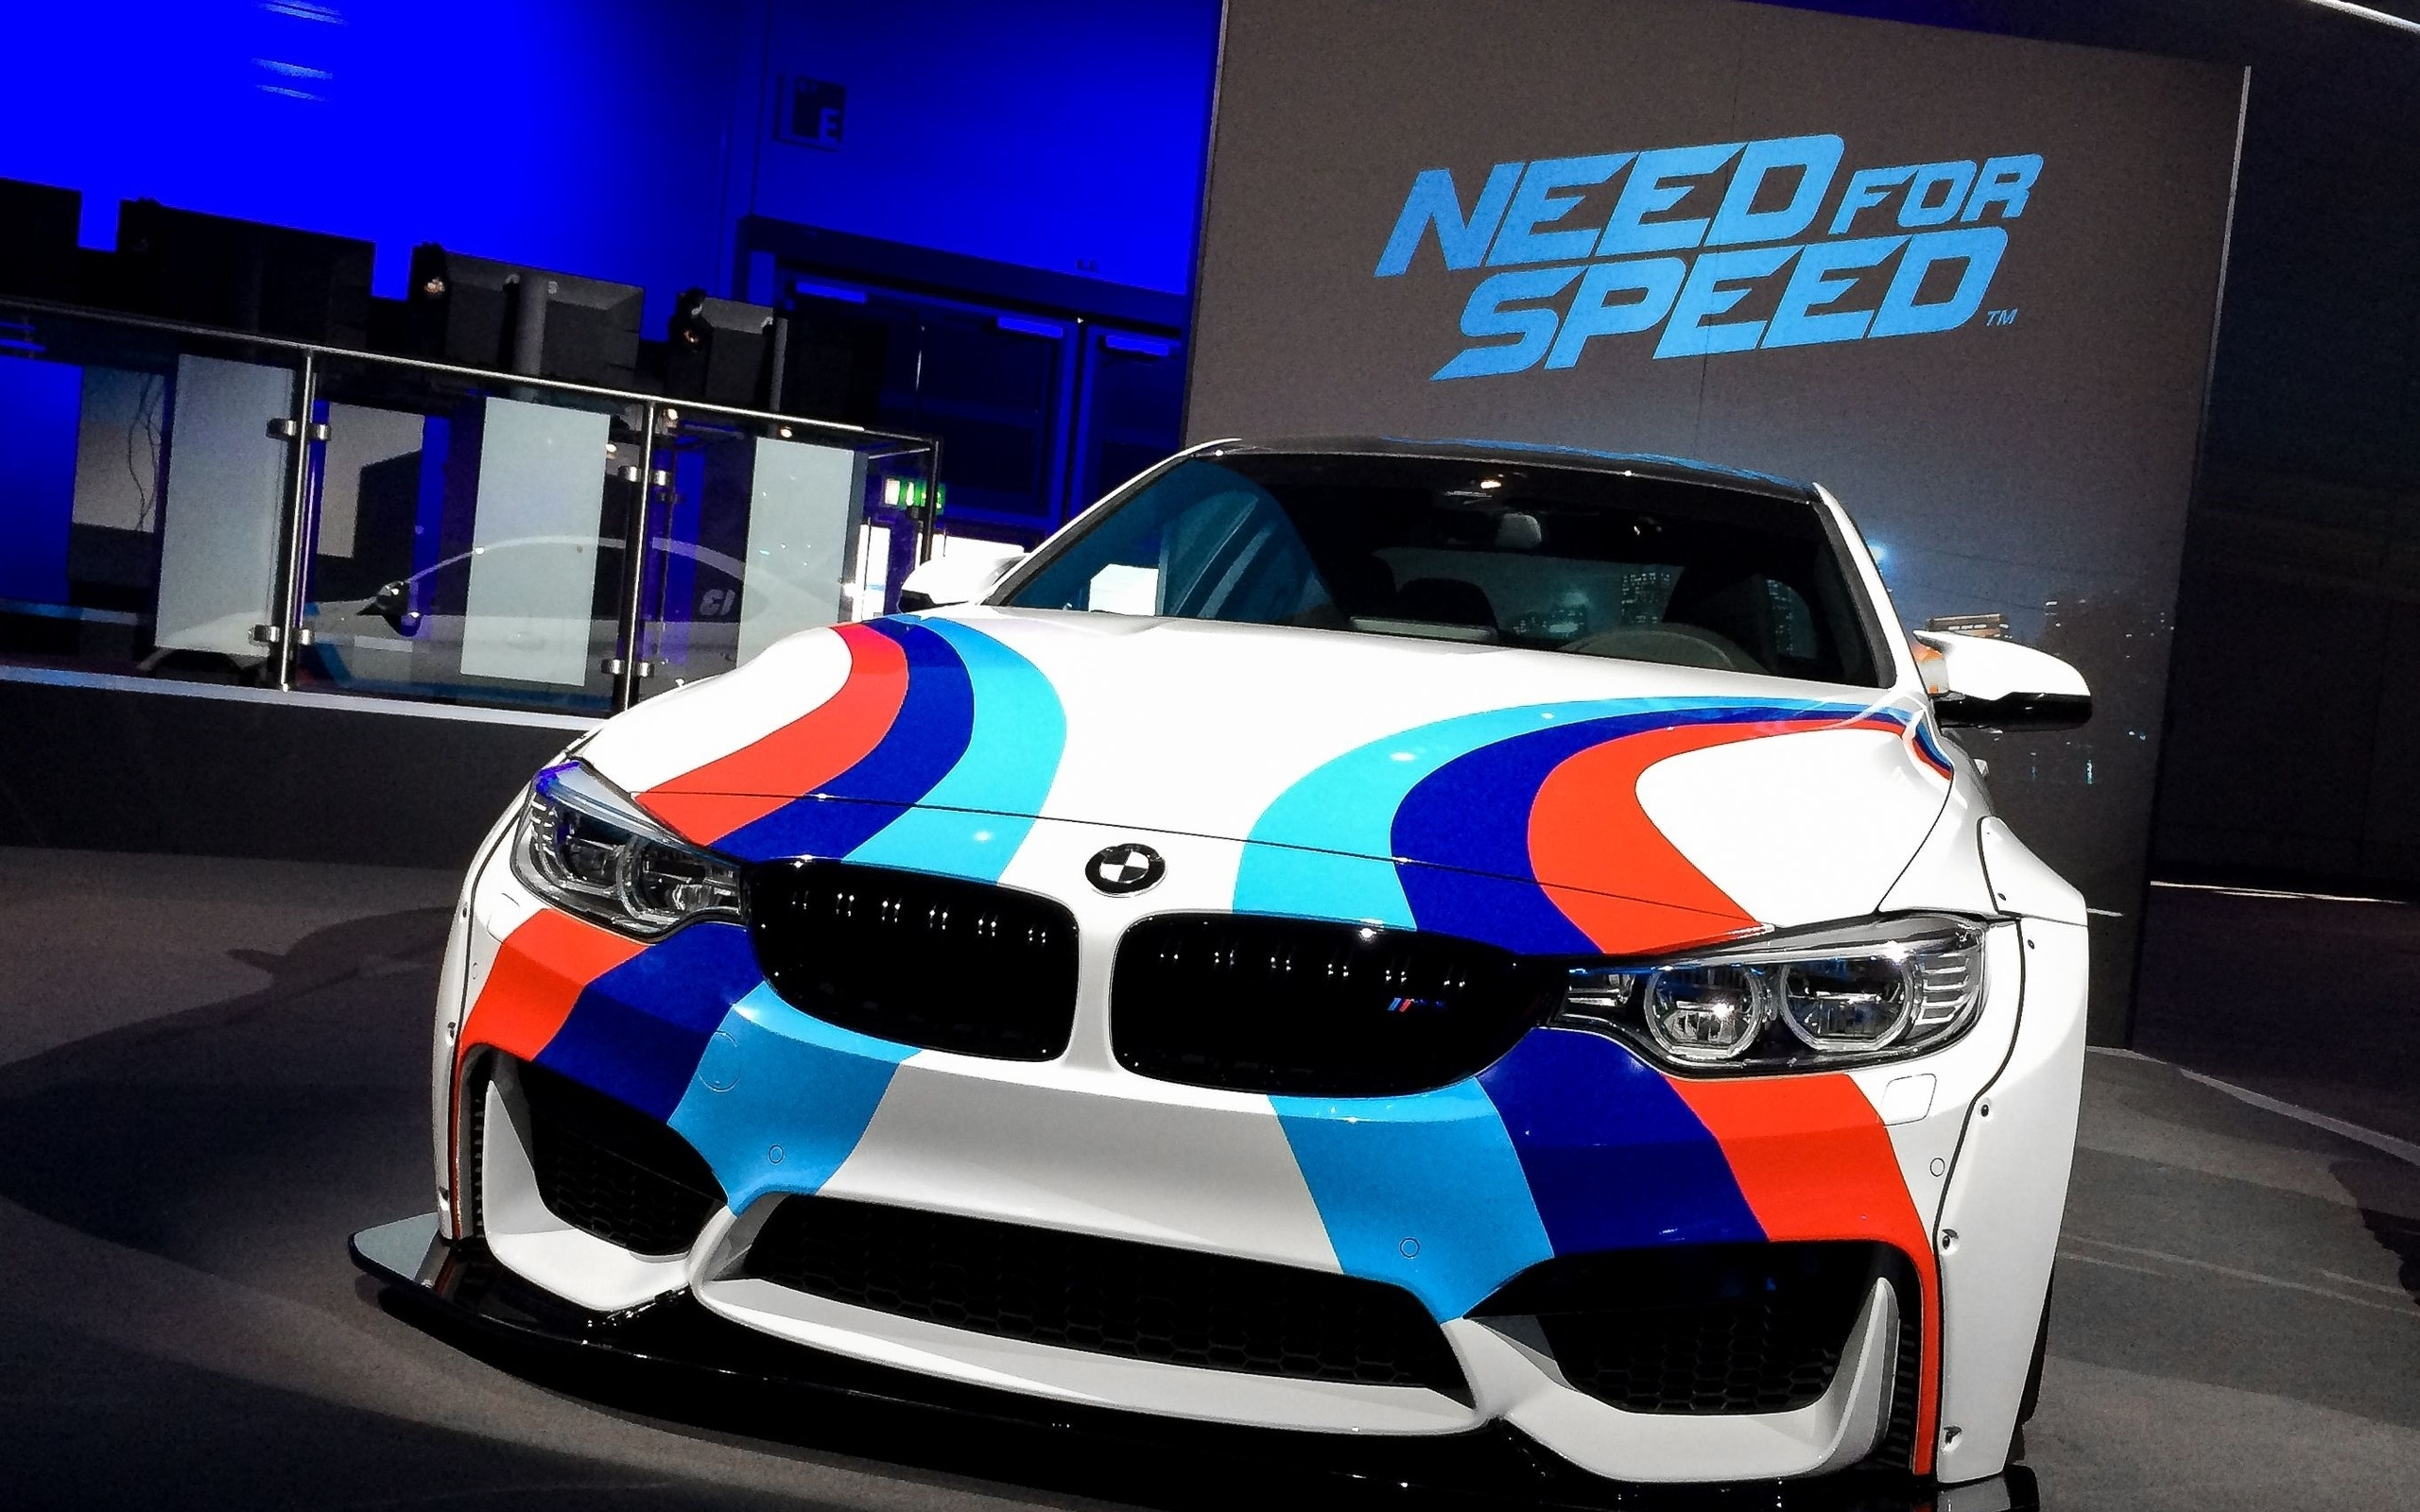 Need For Speed BMW for 2560 x 1600 widescreen resolution